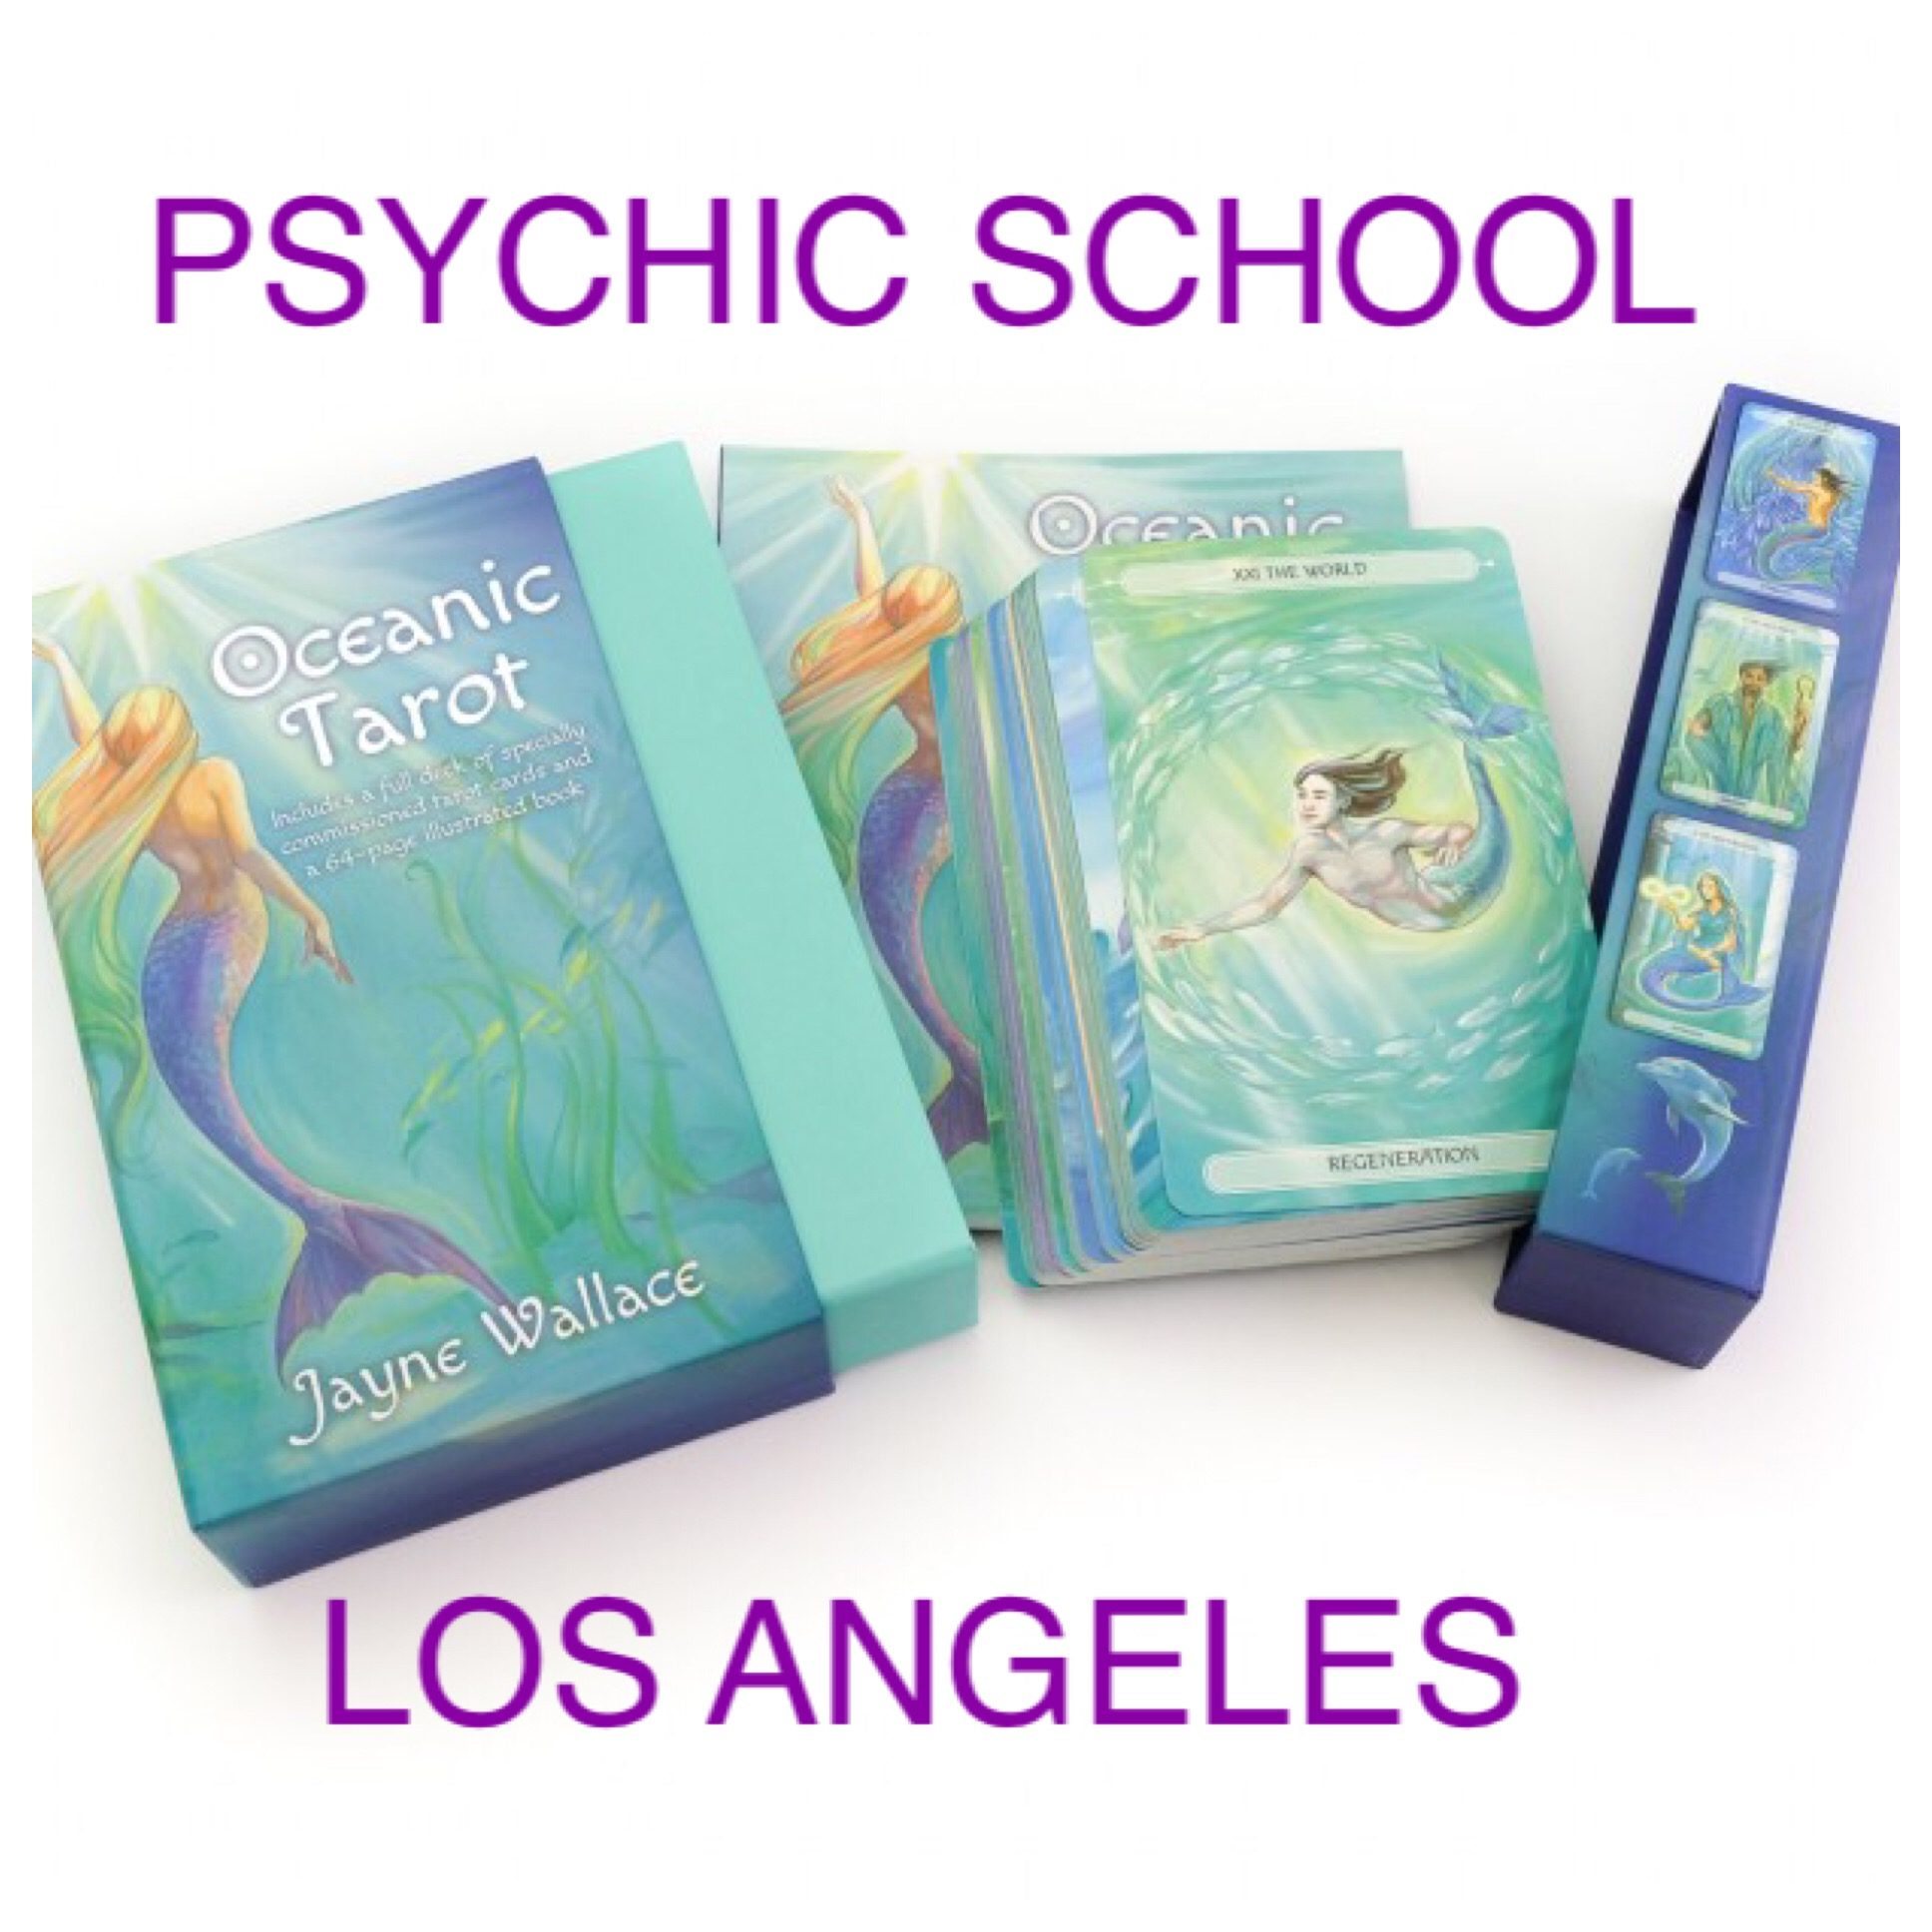 Psychic School in Los Angeles